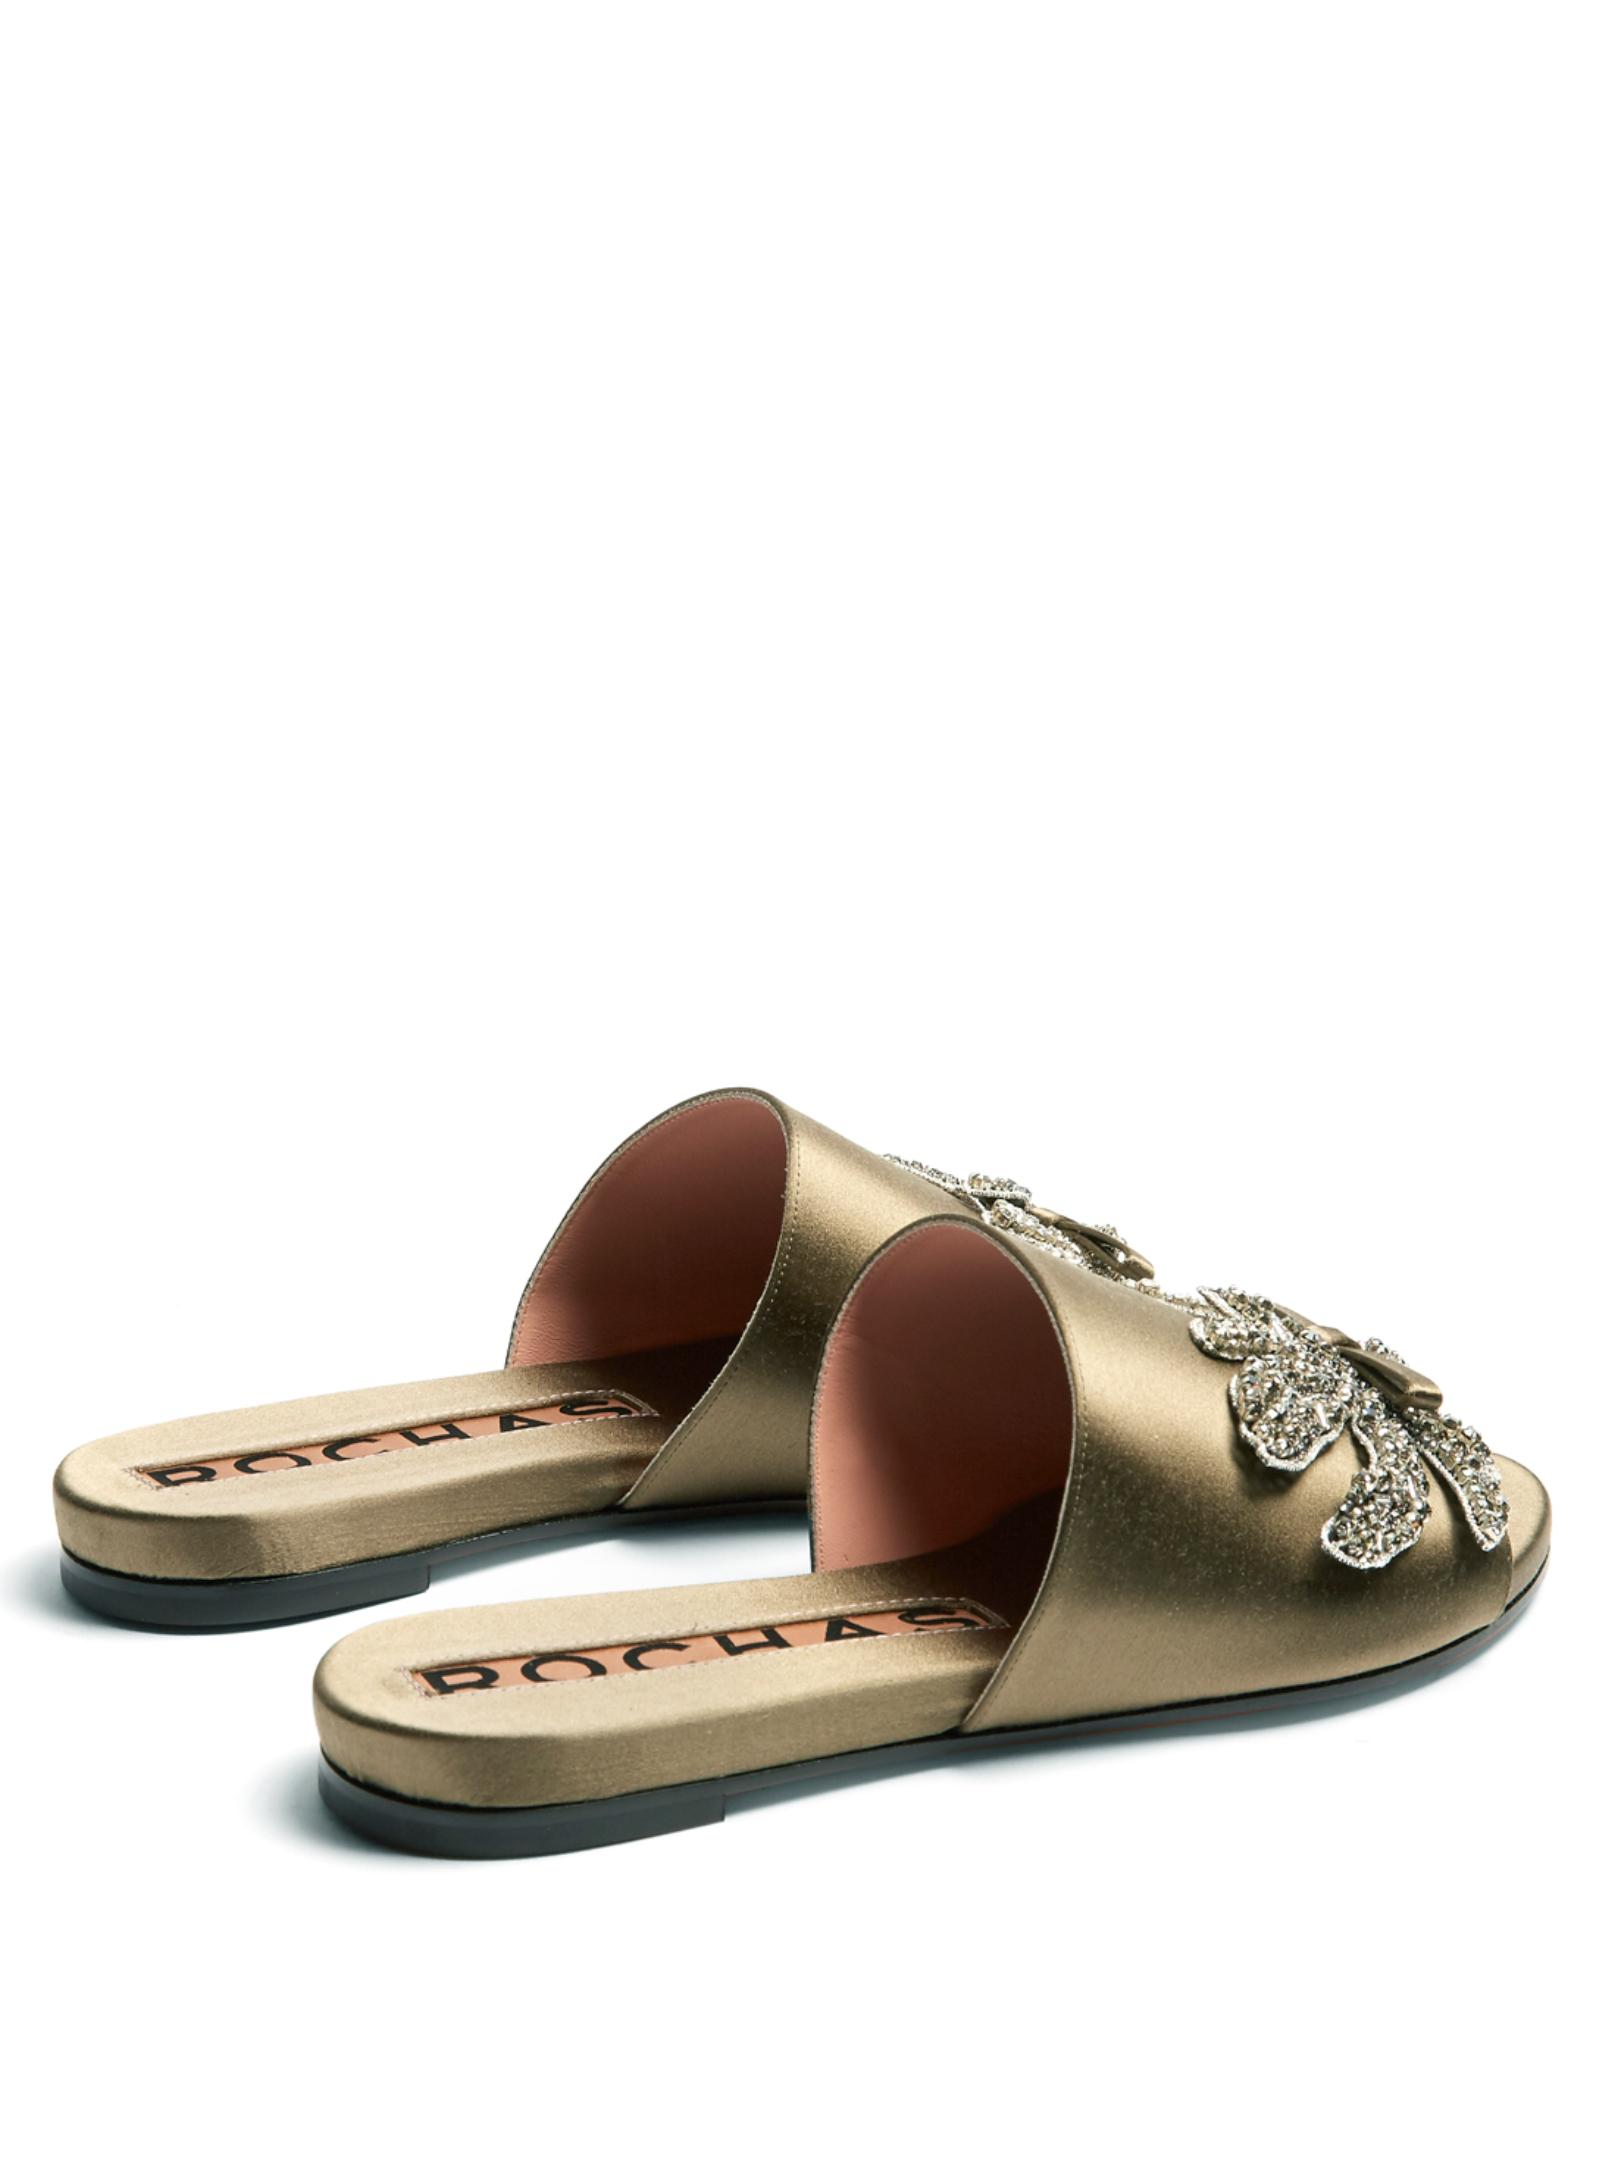 Rochas Crystal-embellished satin slides Buy Cheap Marketable Pictures For Sale Reliable Cheap Price Outlet Original DZY6pFVI7b